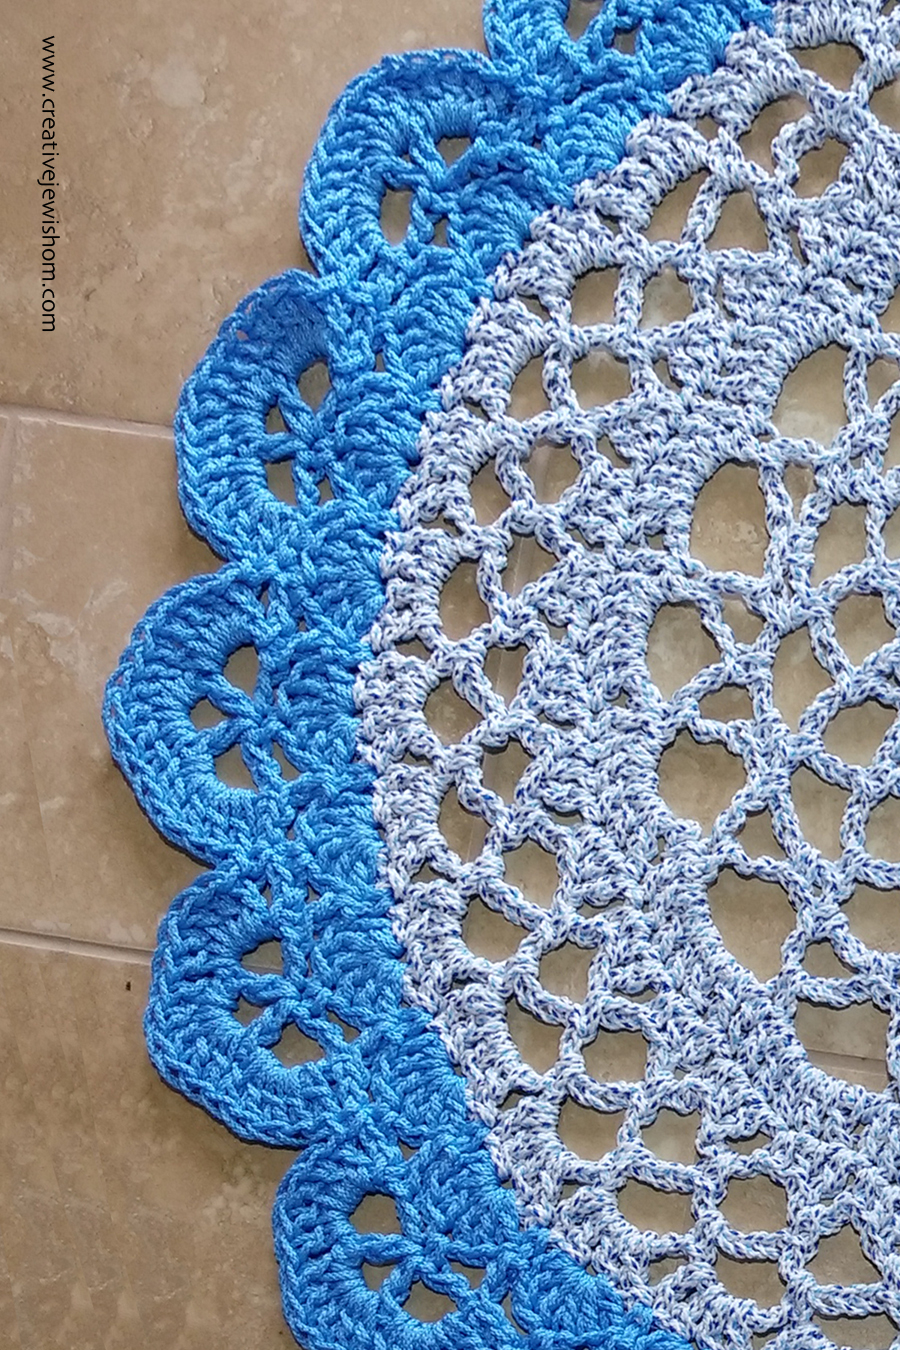 Giant Crocheted Doily Rug Using Cord - creative jewish mom